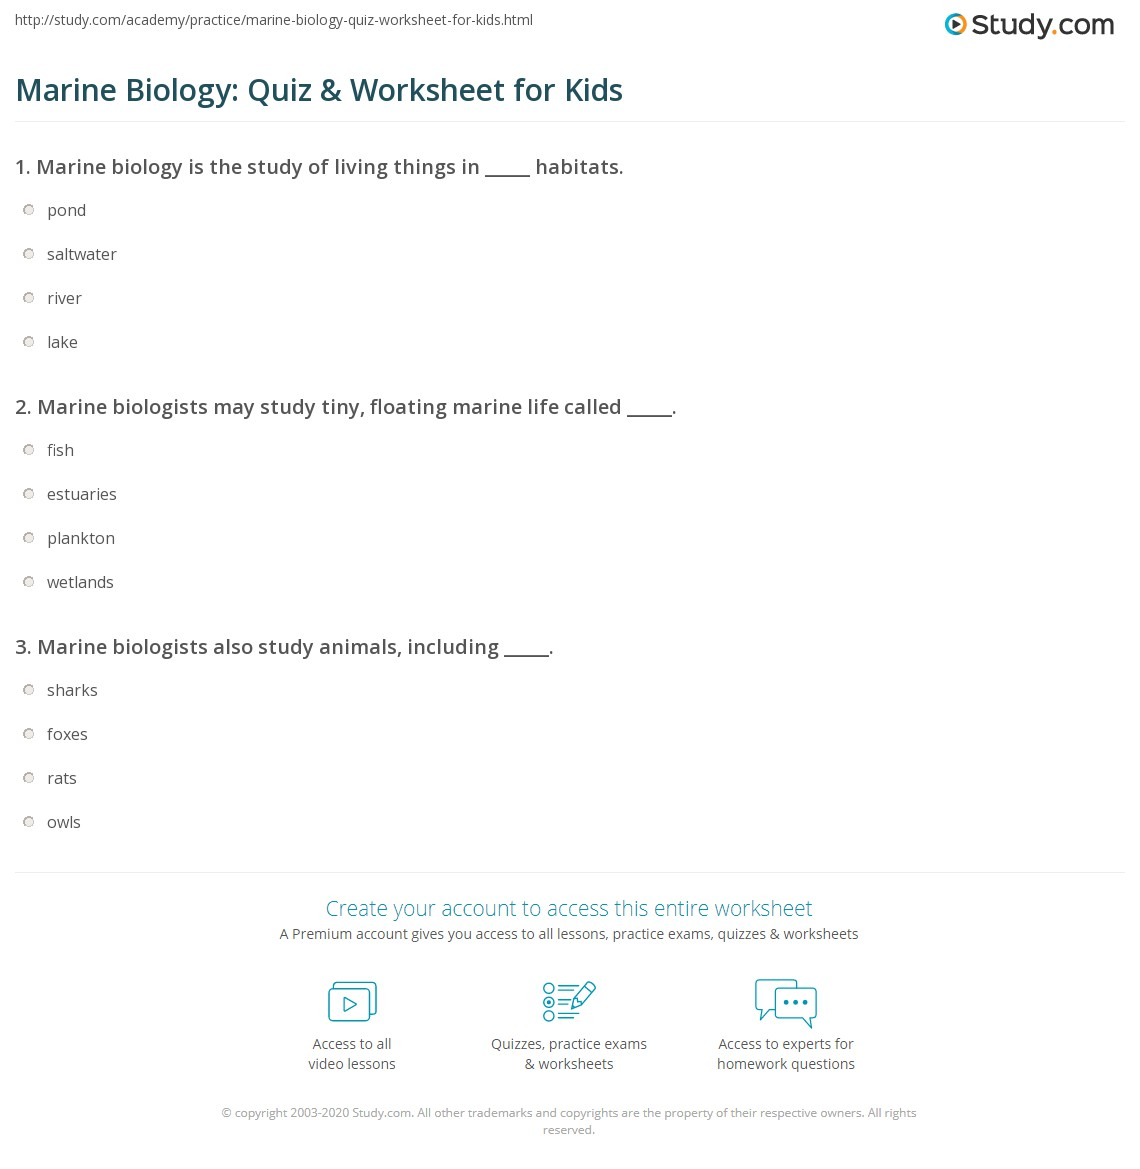 Print Marine Biology Facts Lesson For Kids Worksheet